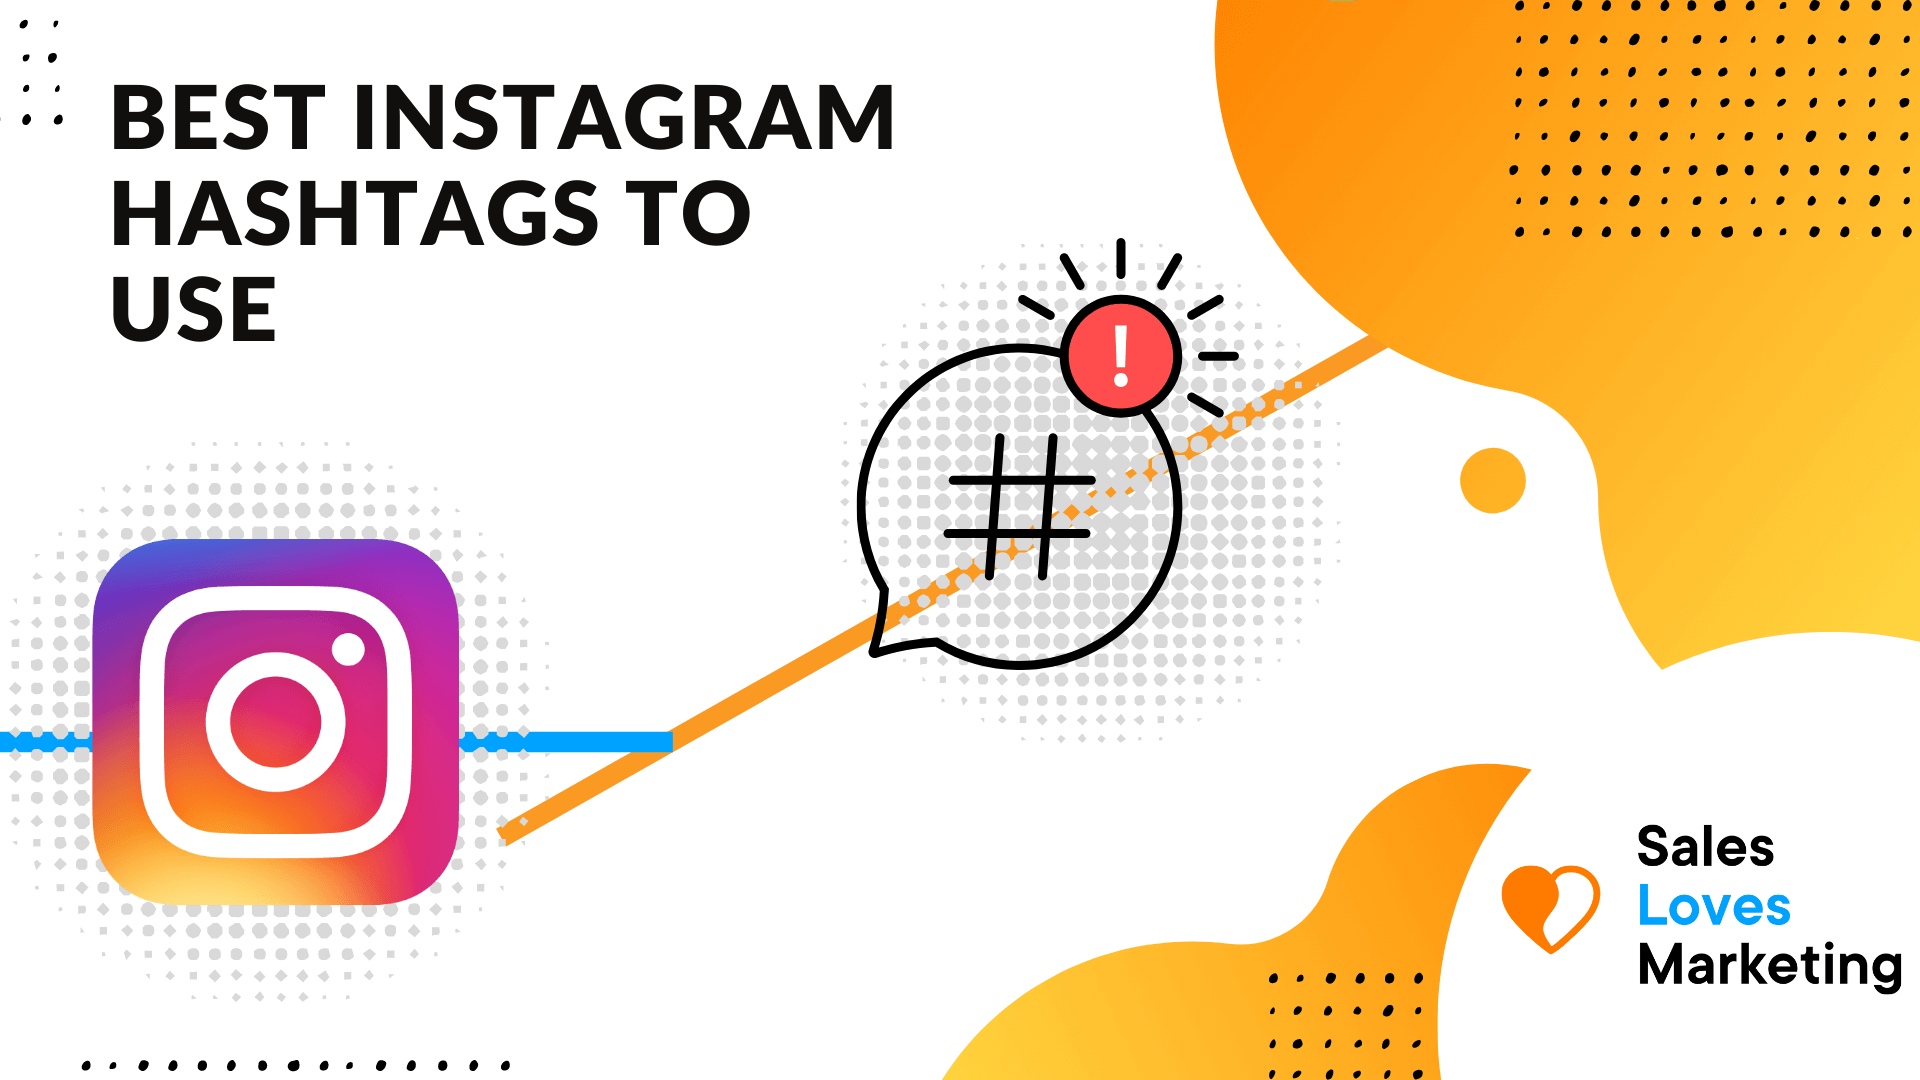 Learn how to use the best instagram hashtags.